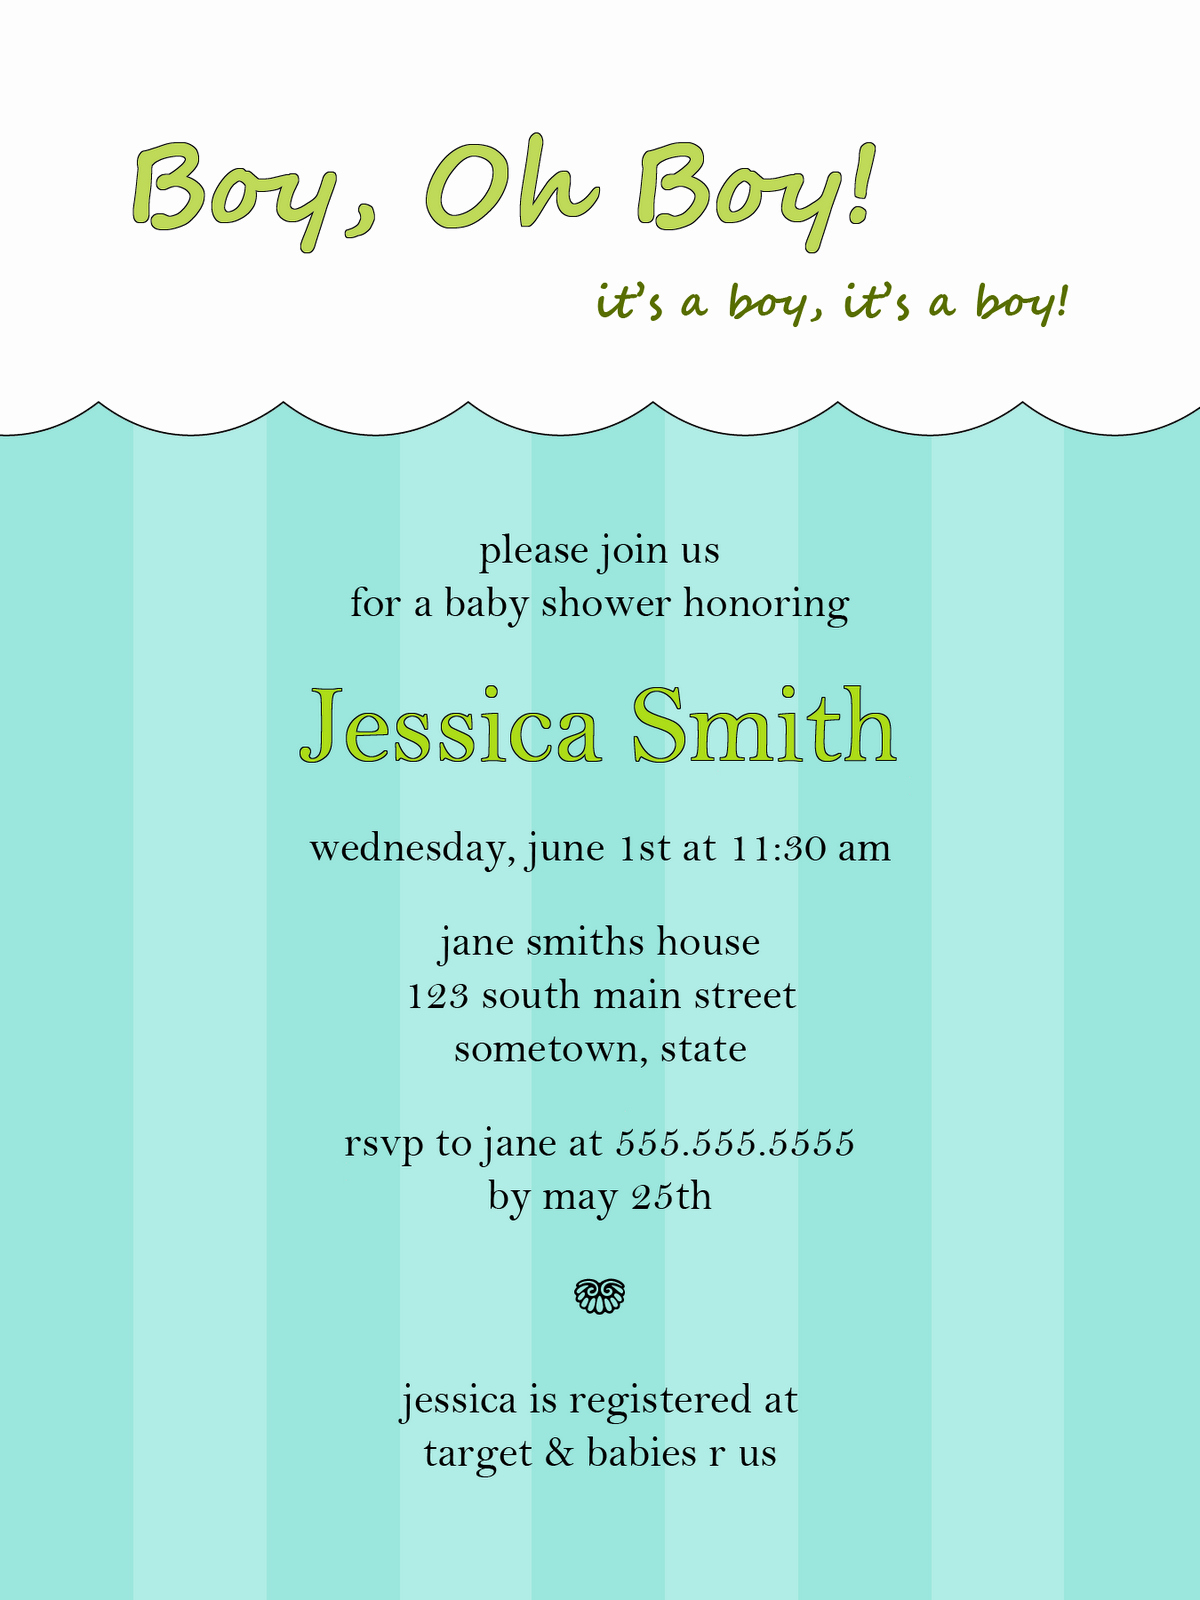 Work Baby Shower Invitation Inspirational Loving Life Designs Free Graphic Designs and Printables